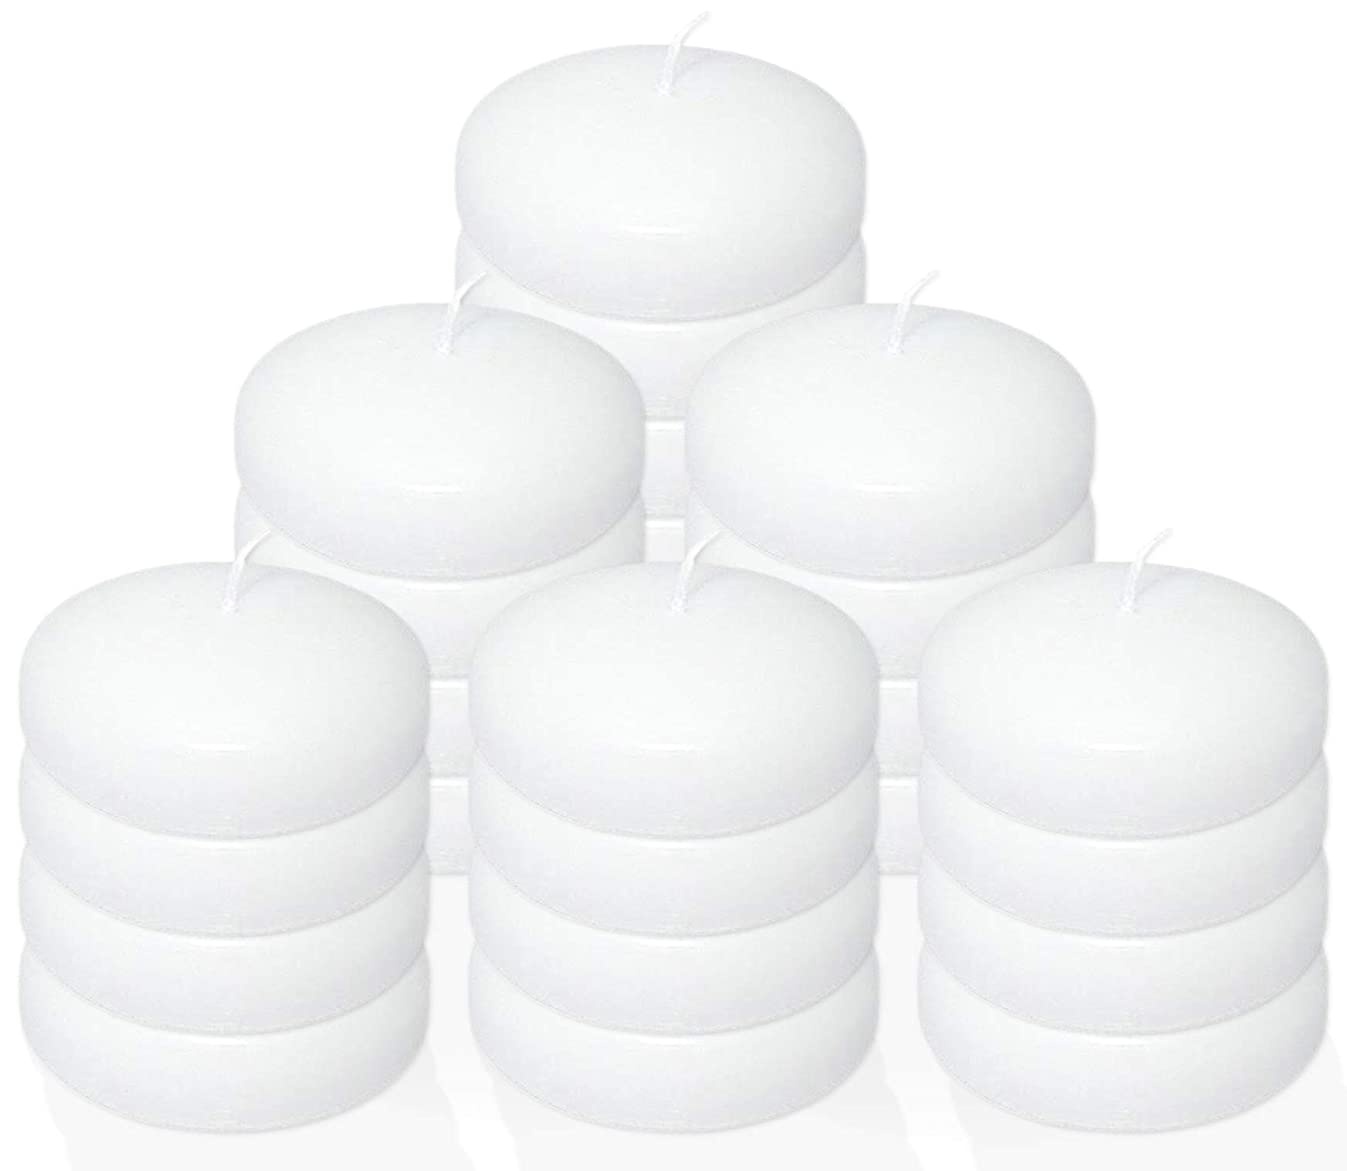 Stock Your Home 10 Hour Burning White Unscented Classic Floating Candles for Weddings, Parties, Special Occasions and Home Decorations (Set of 24)